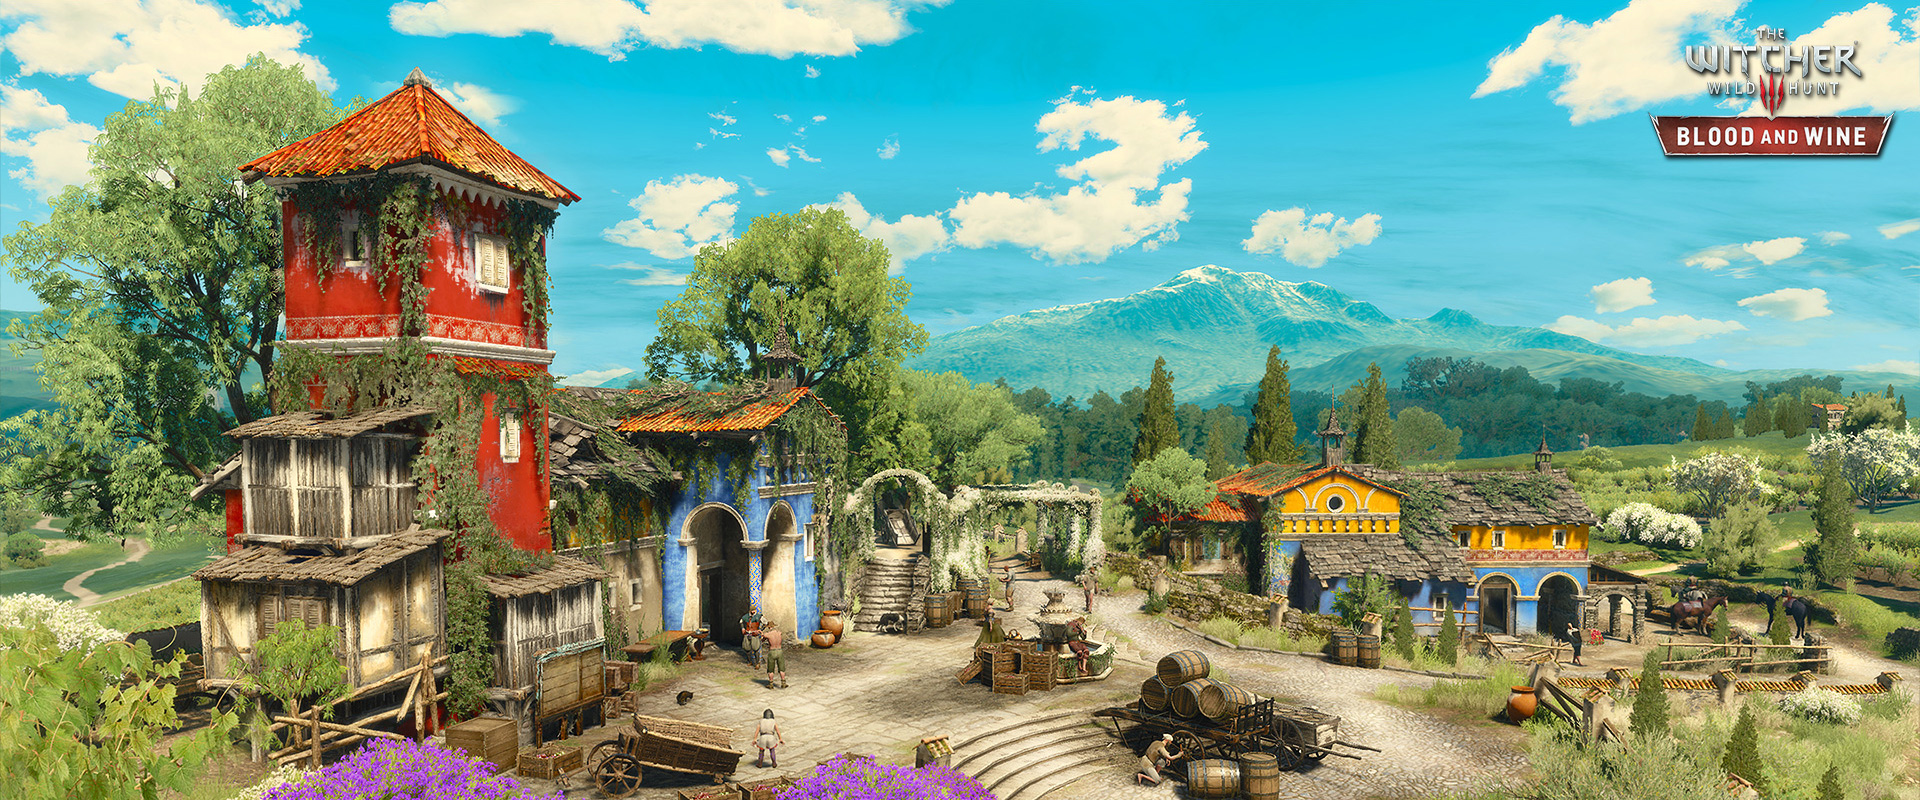 Ludophiles-Witcher-3-Blood-and-Wine-Toussaint-famous-for-wine-vineyards.jpg